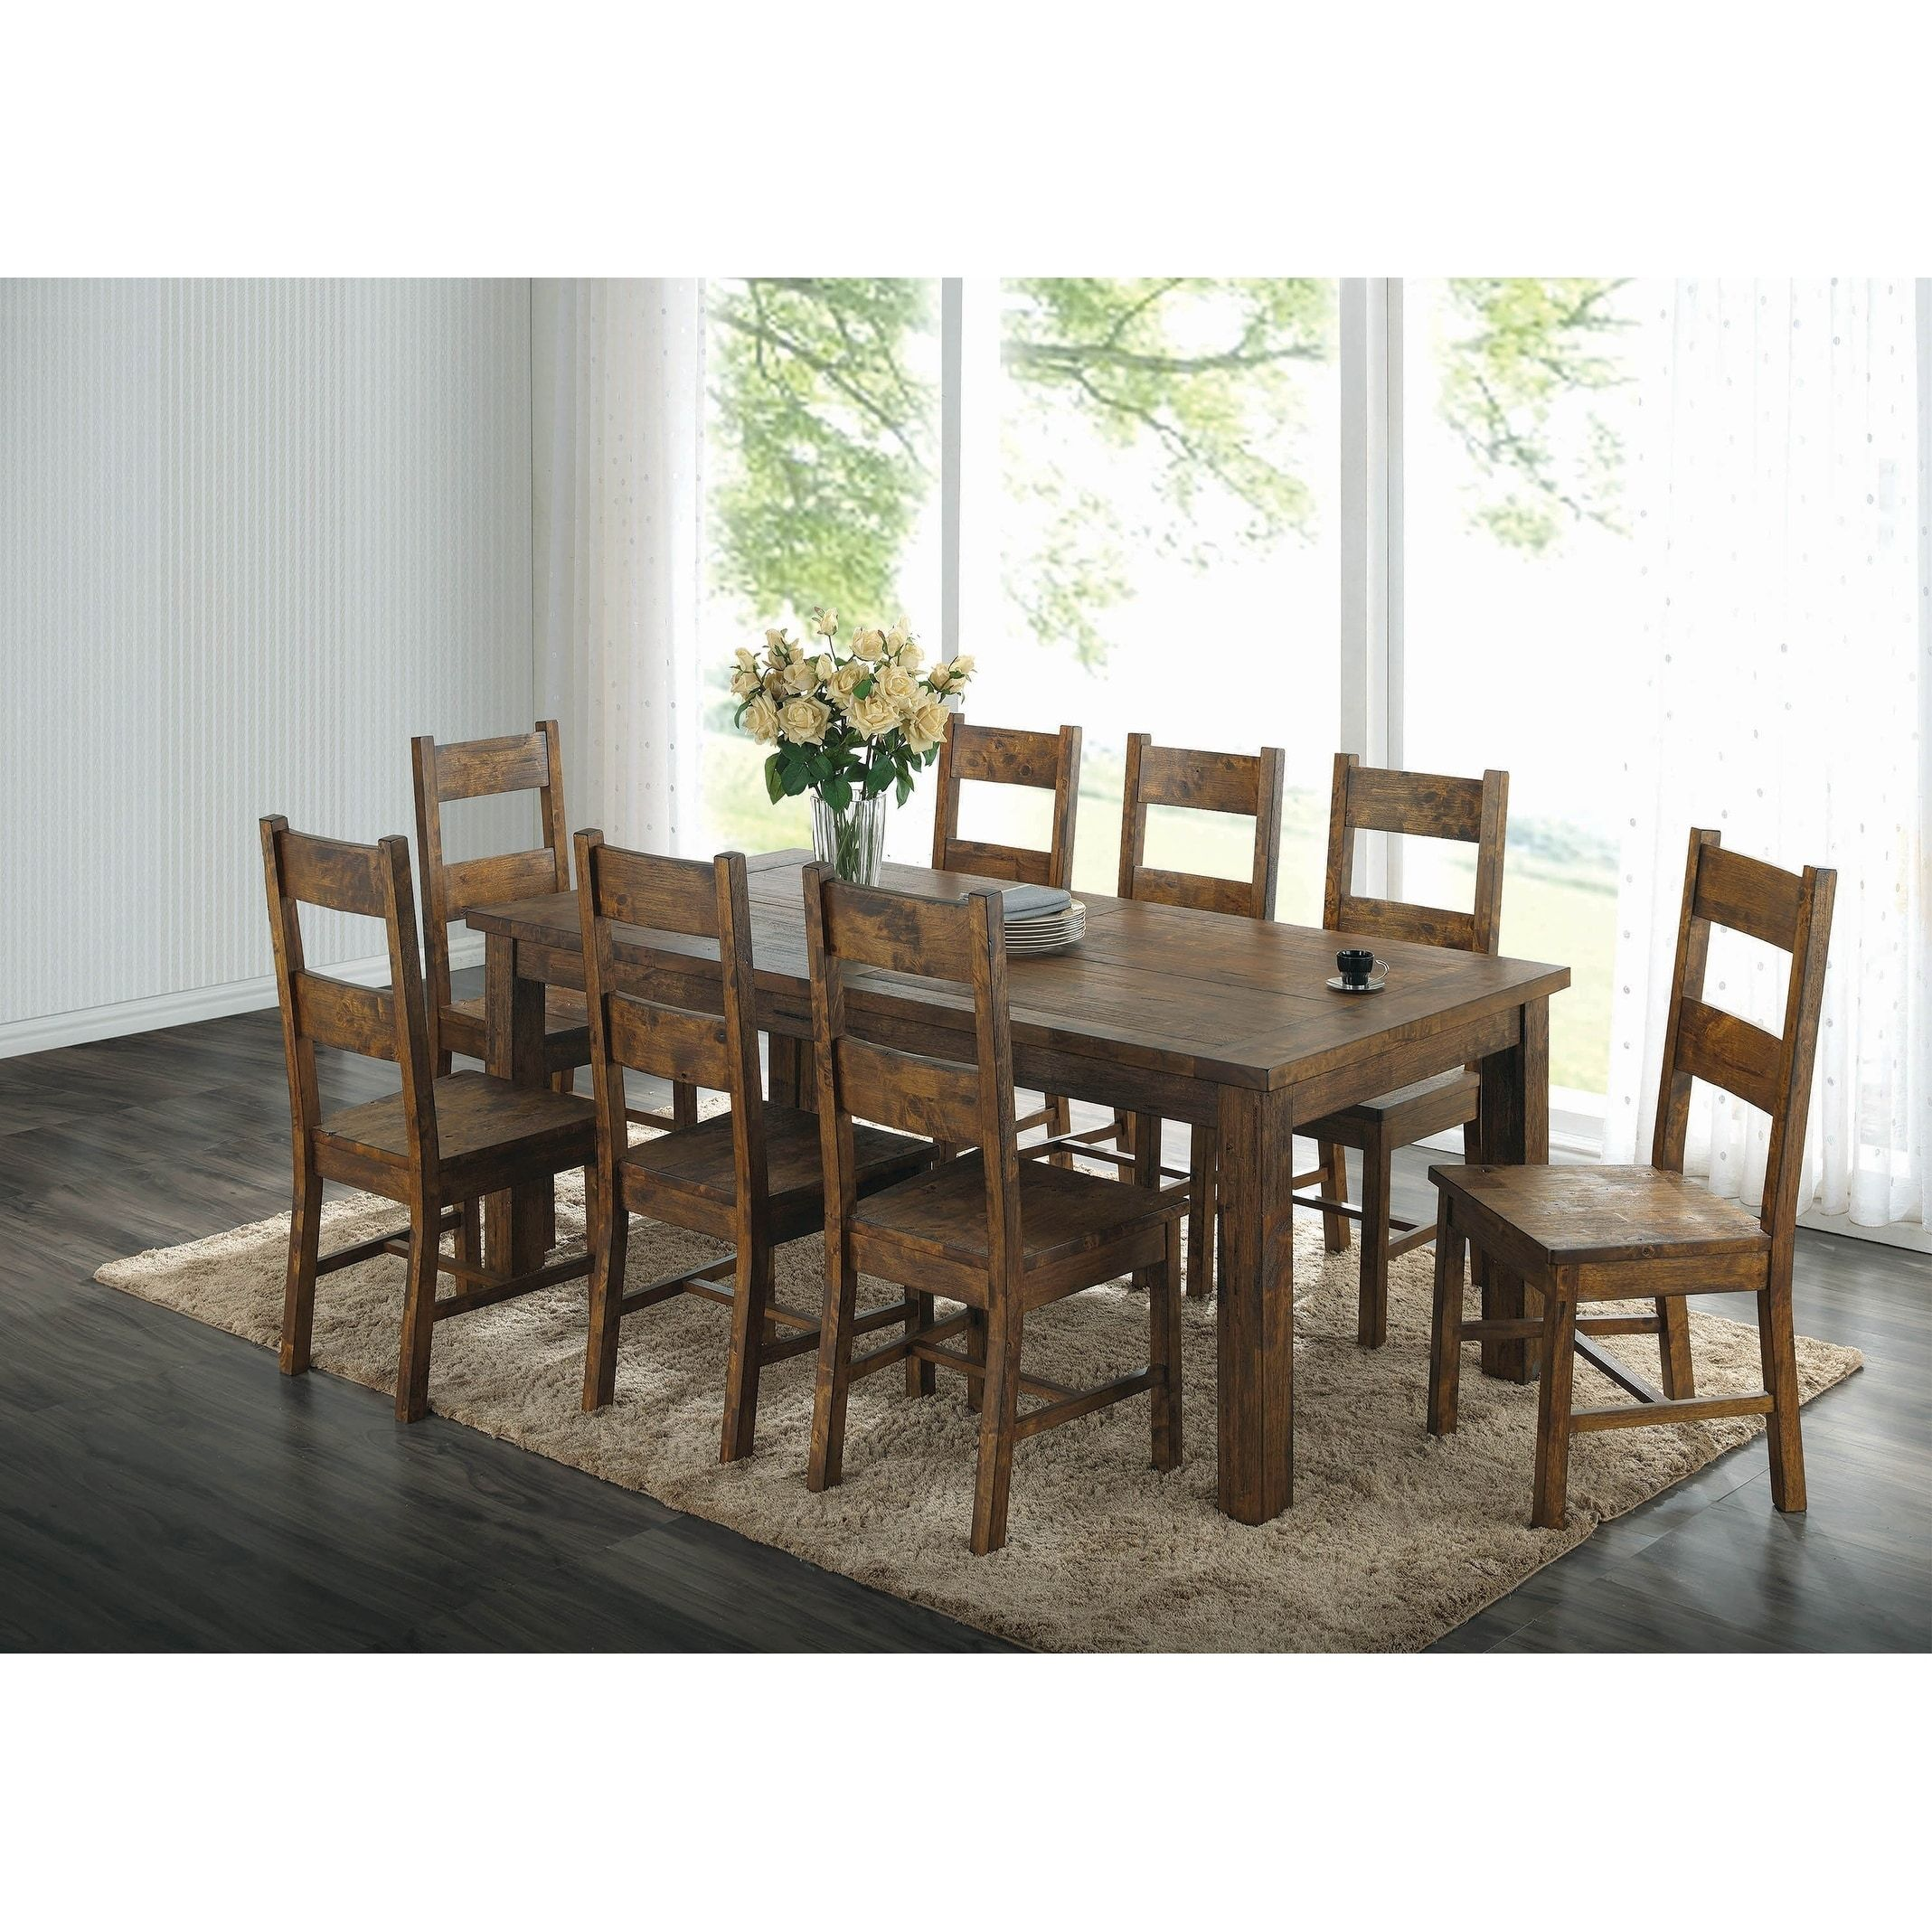 Verus Rustic Golden Brown 7 Piece Rectangle Dining Set Furniture Dining Table Dining Room Sets Dining Table